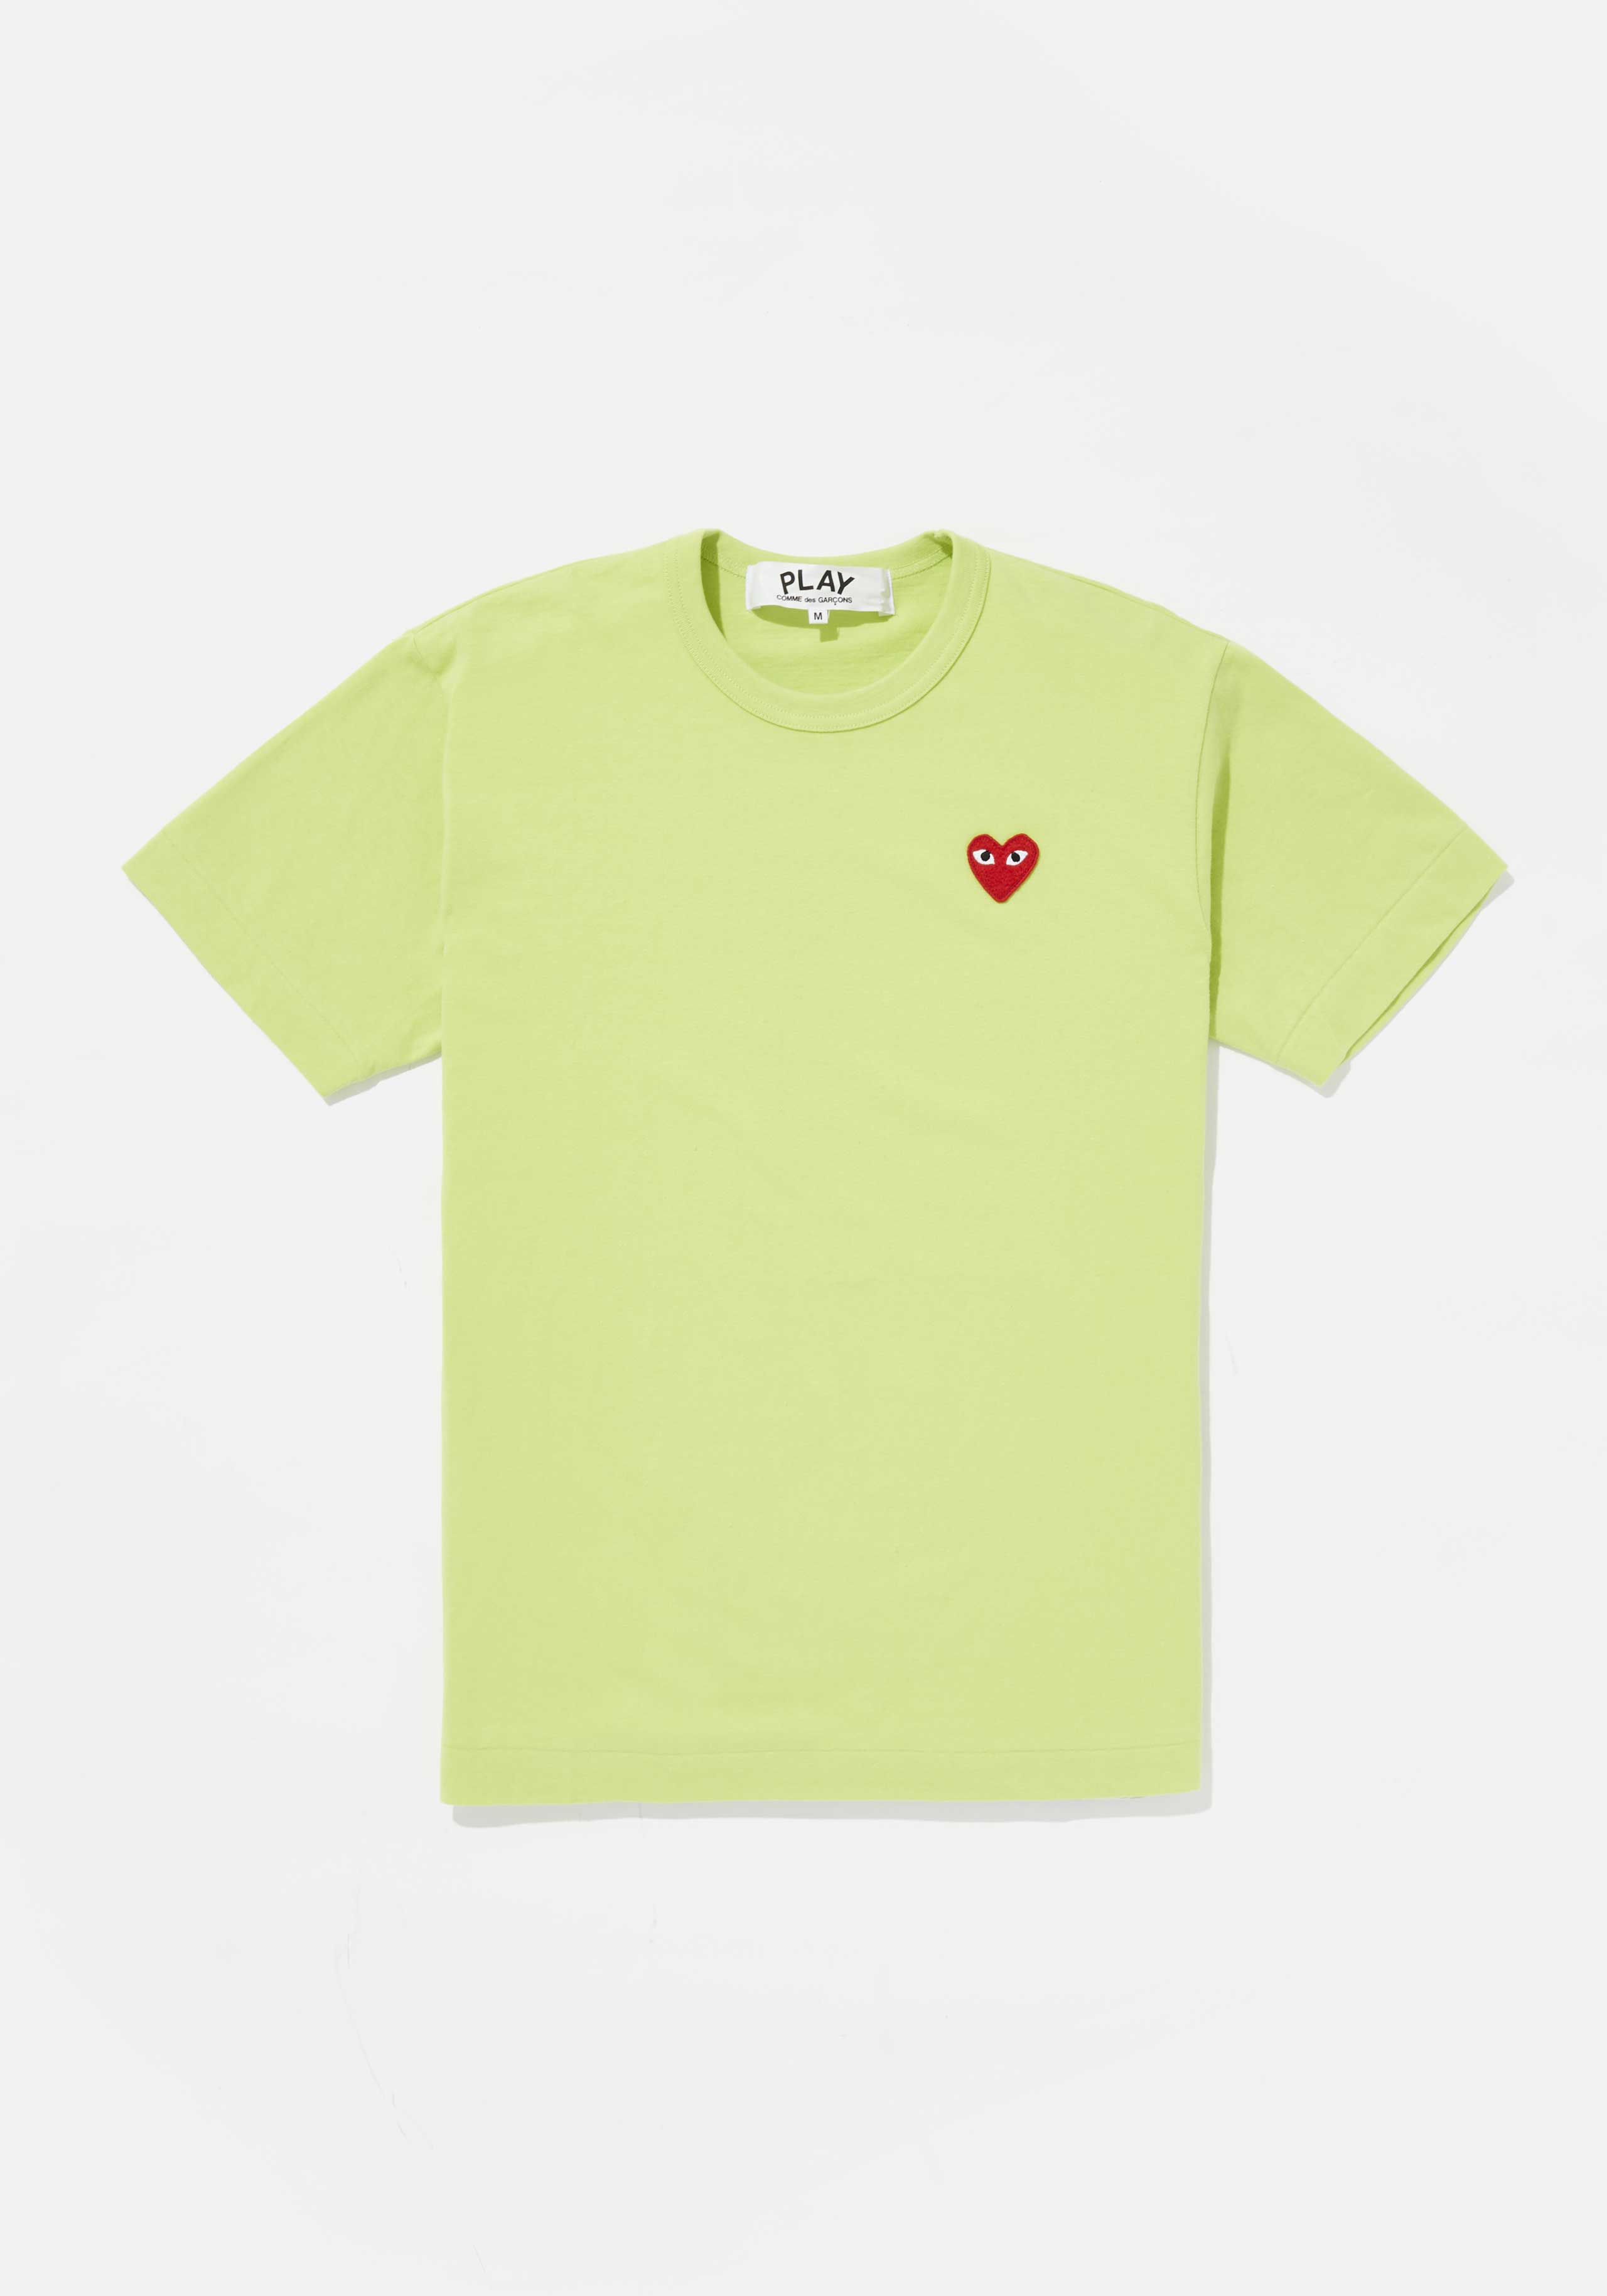 comme des garcons bright red heart tee 1